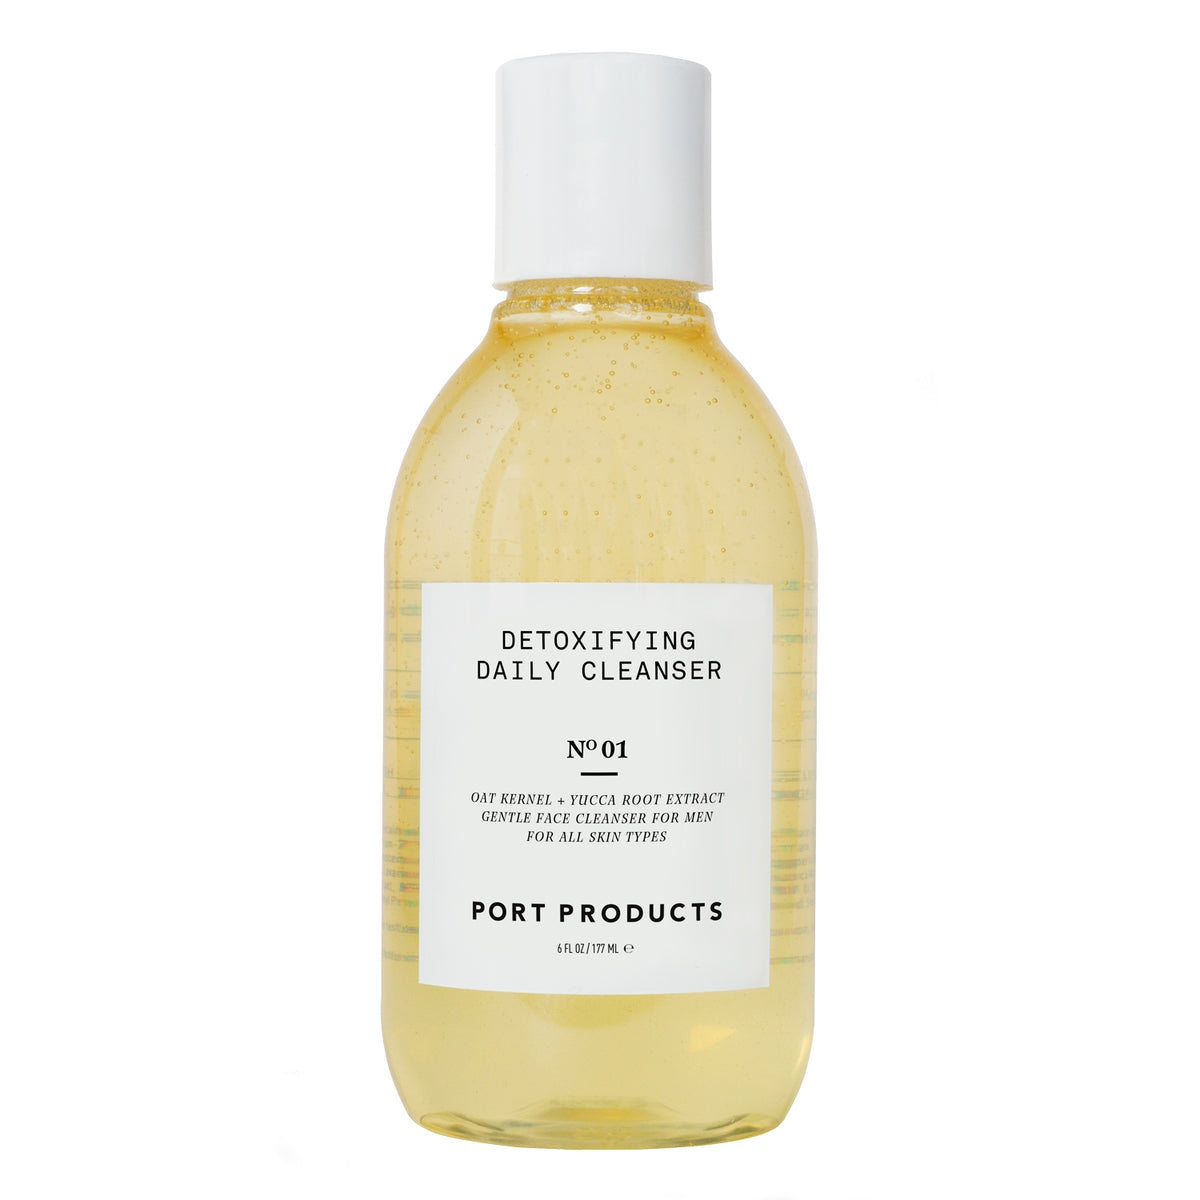 Port Products Detoxifying Daily Cleanser